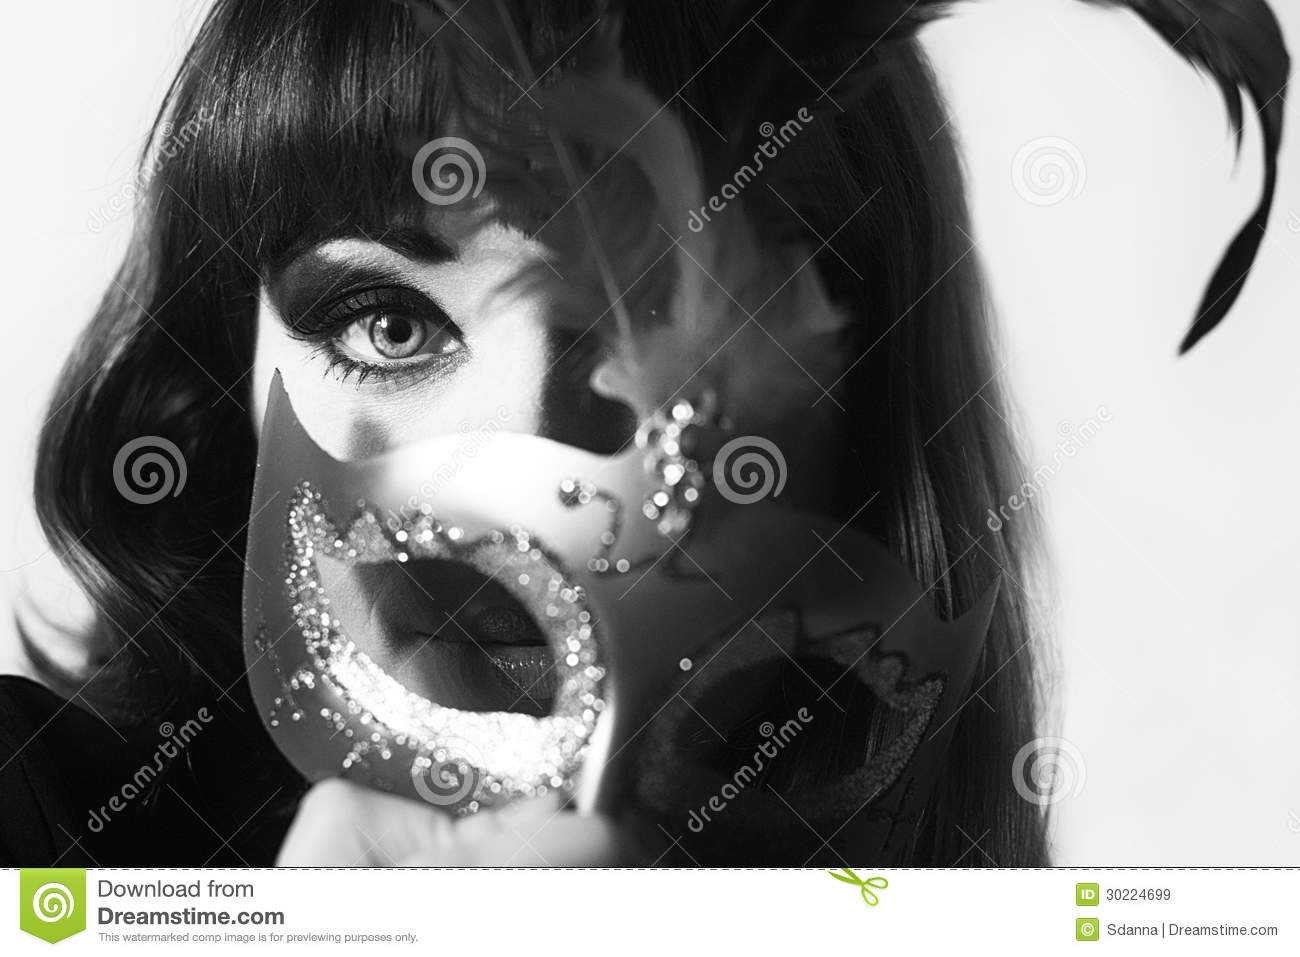 hiding behind the mask Download this smiling woman hiding behind venice mask near rialto bridge photo now and search more of istock's library of royalty-free stock images that features adult photos available for quick and easy download.